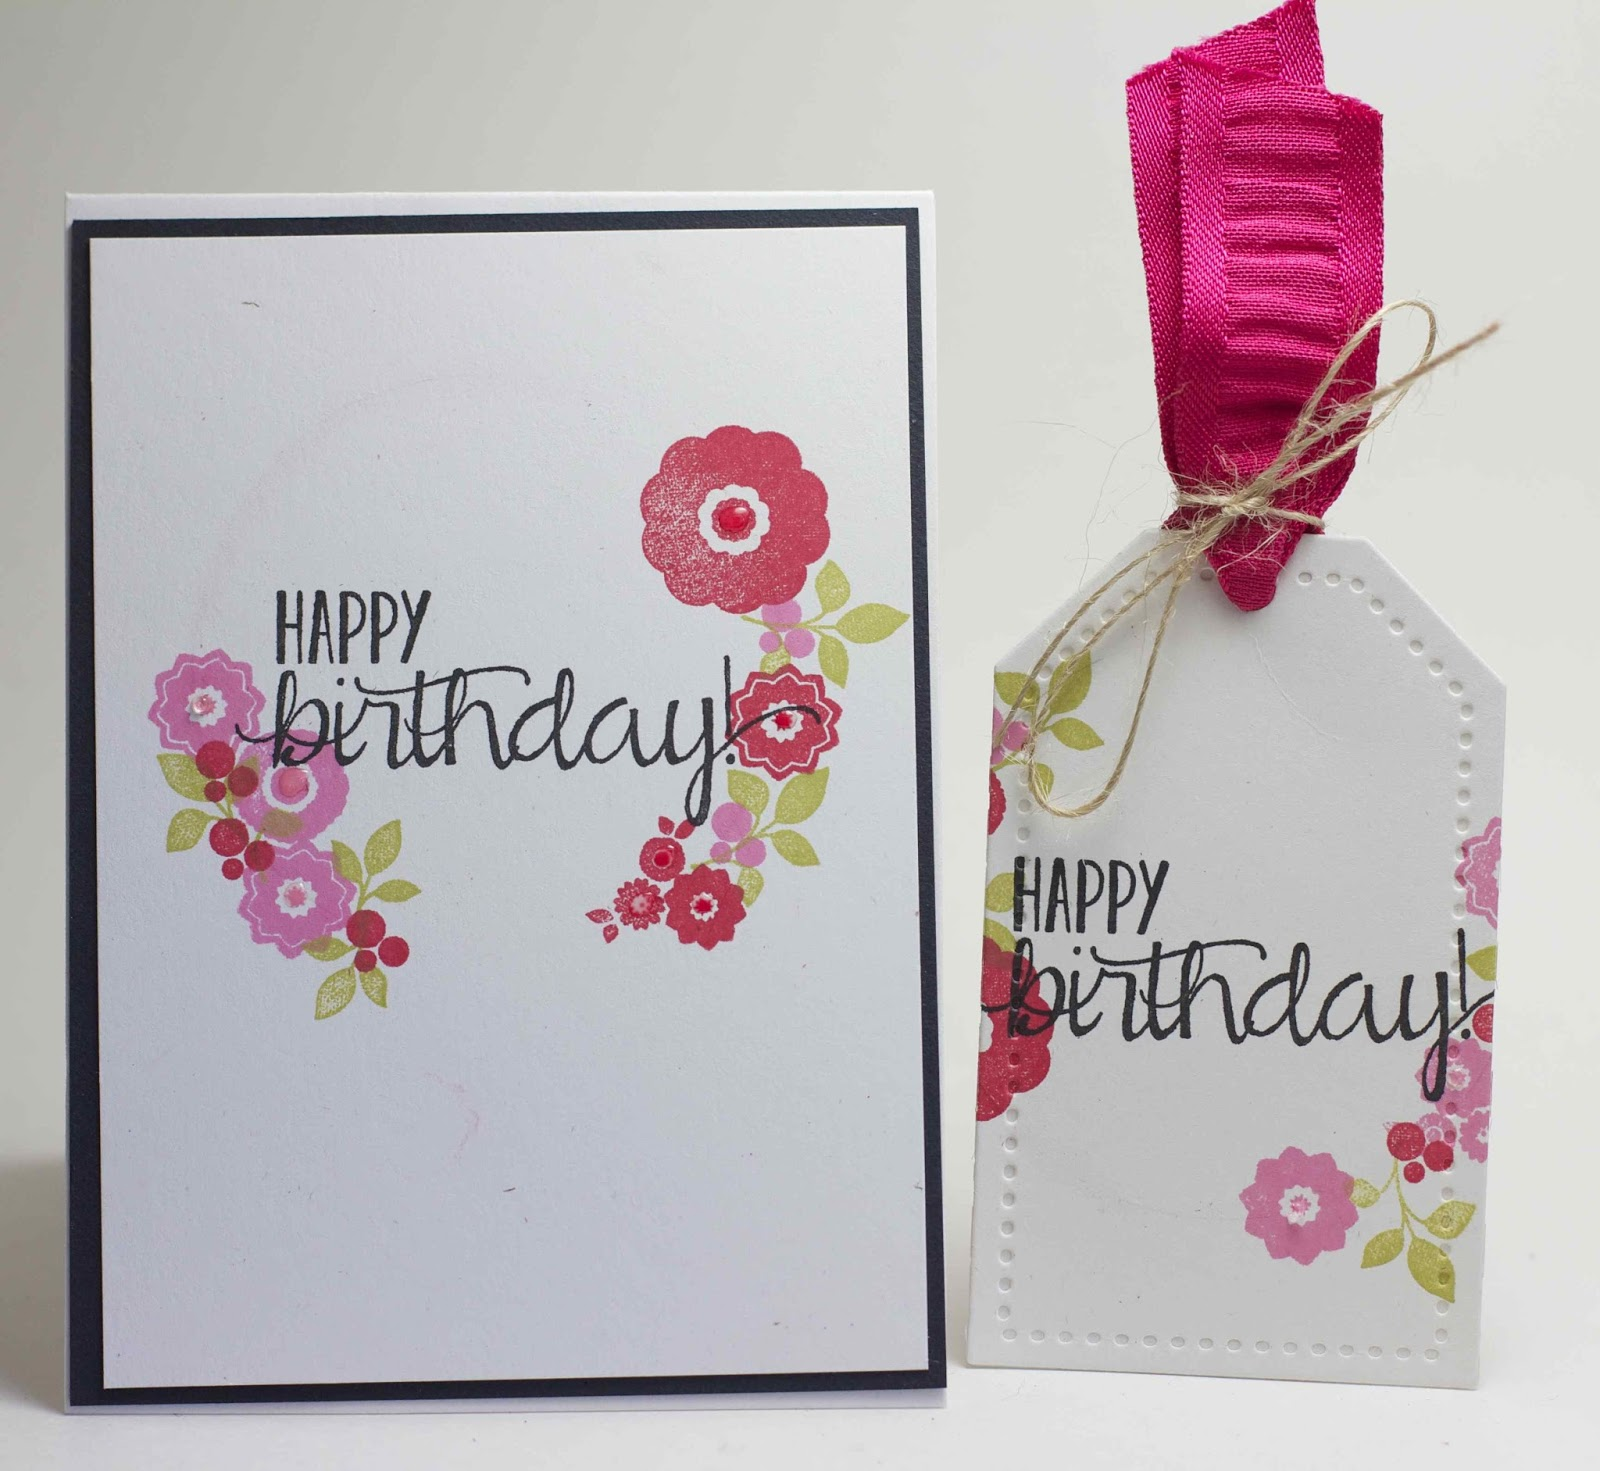 Happy birthday cake quotes pictures meme sister funny brother mom happy birthday card happy birthday cake quotes pictures meme sister funny brother mom to you to me pictures bookmarktalkfo Images